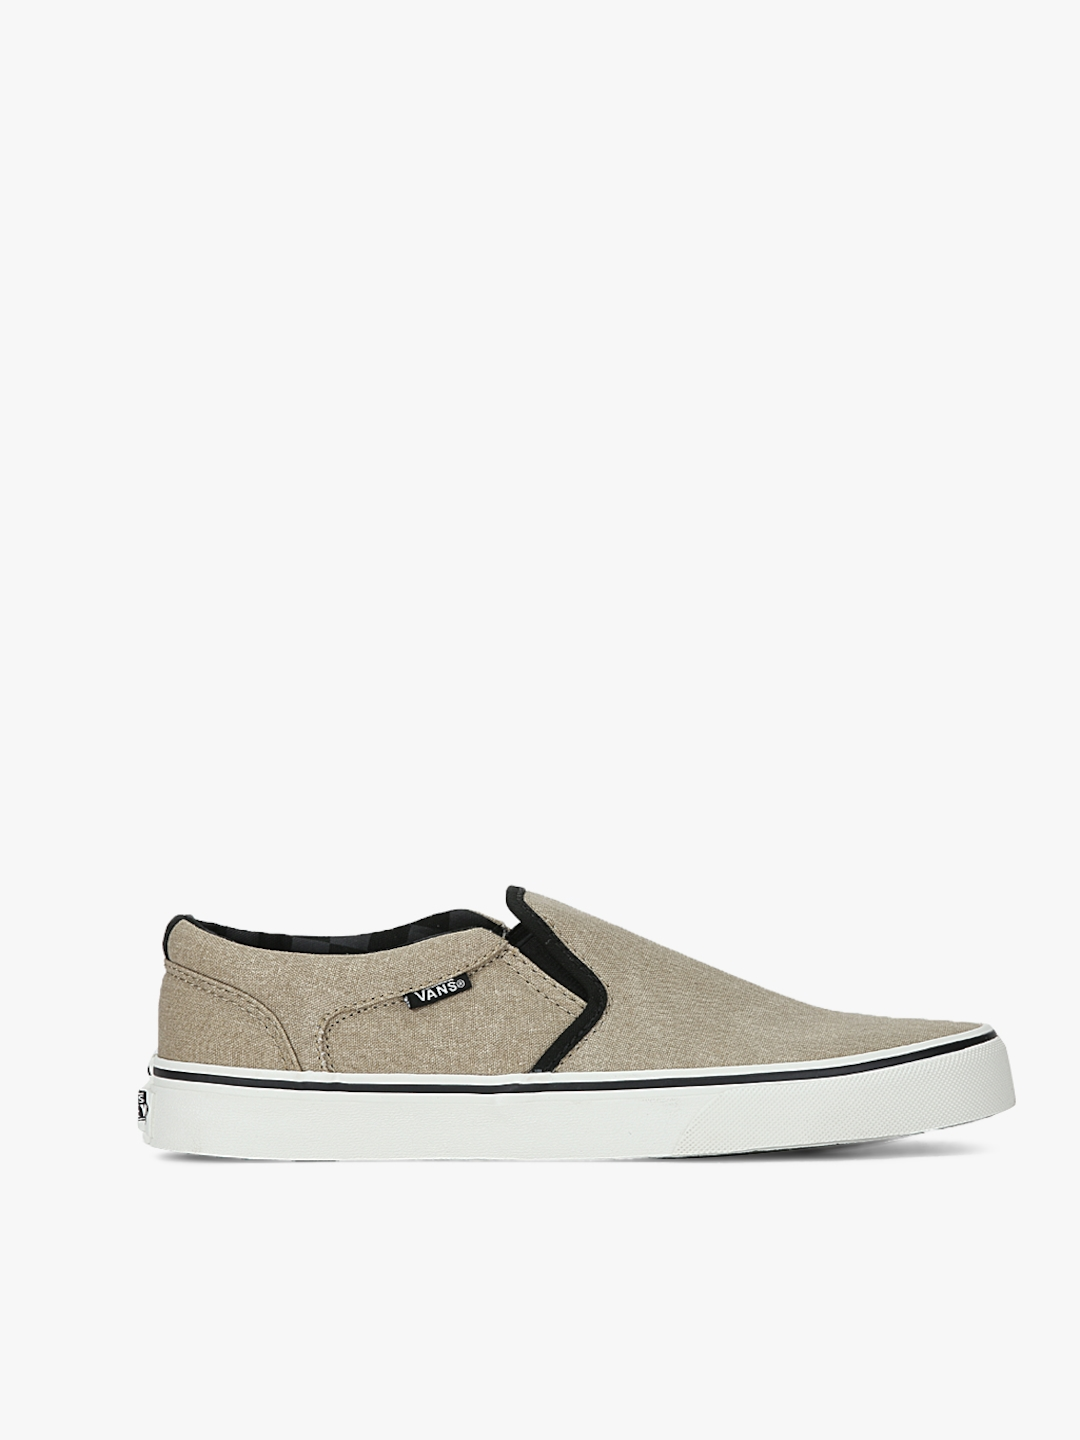 943192debc Buy Vans Men Khaki Asher Slip On Sneakers - Casual Shoes for Men ...